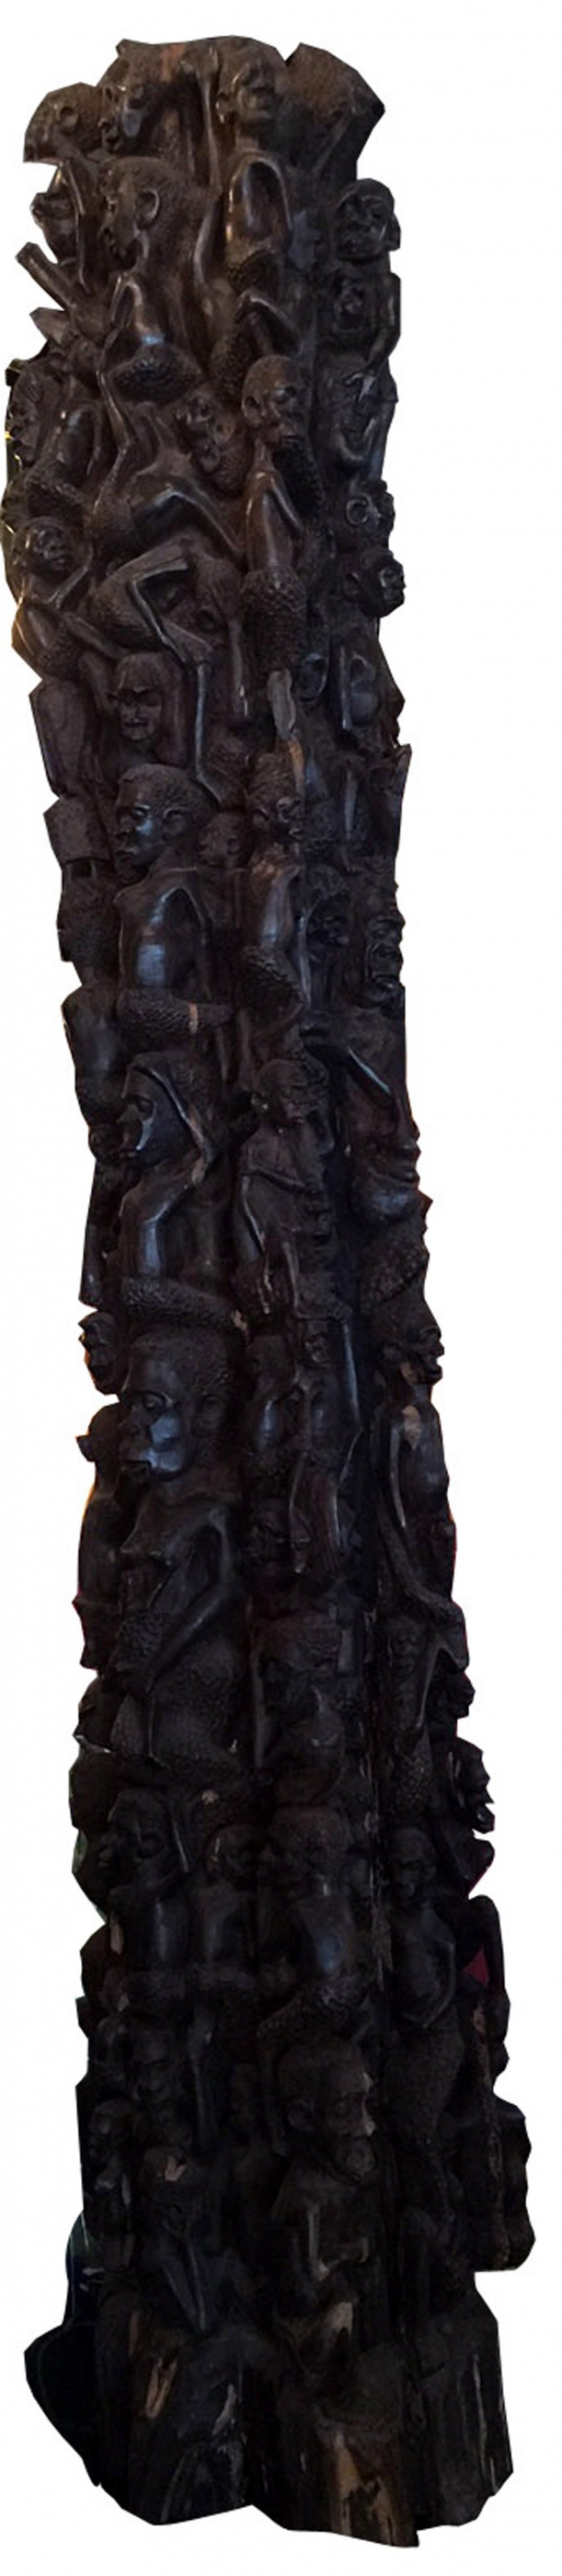 African Carved Wood Family Tree Totem Modernism